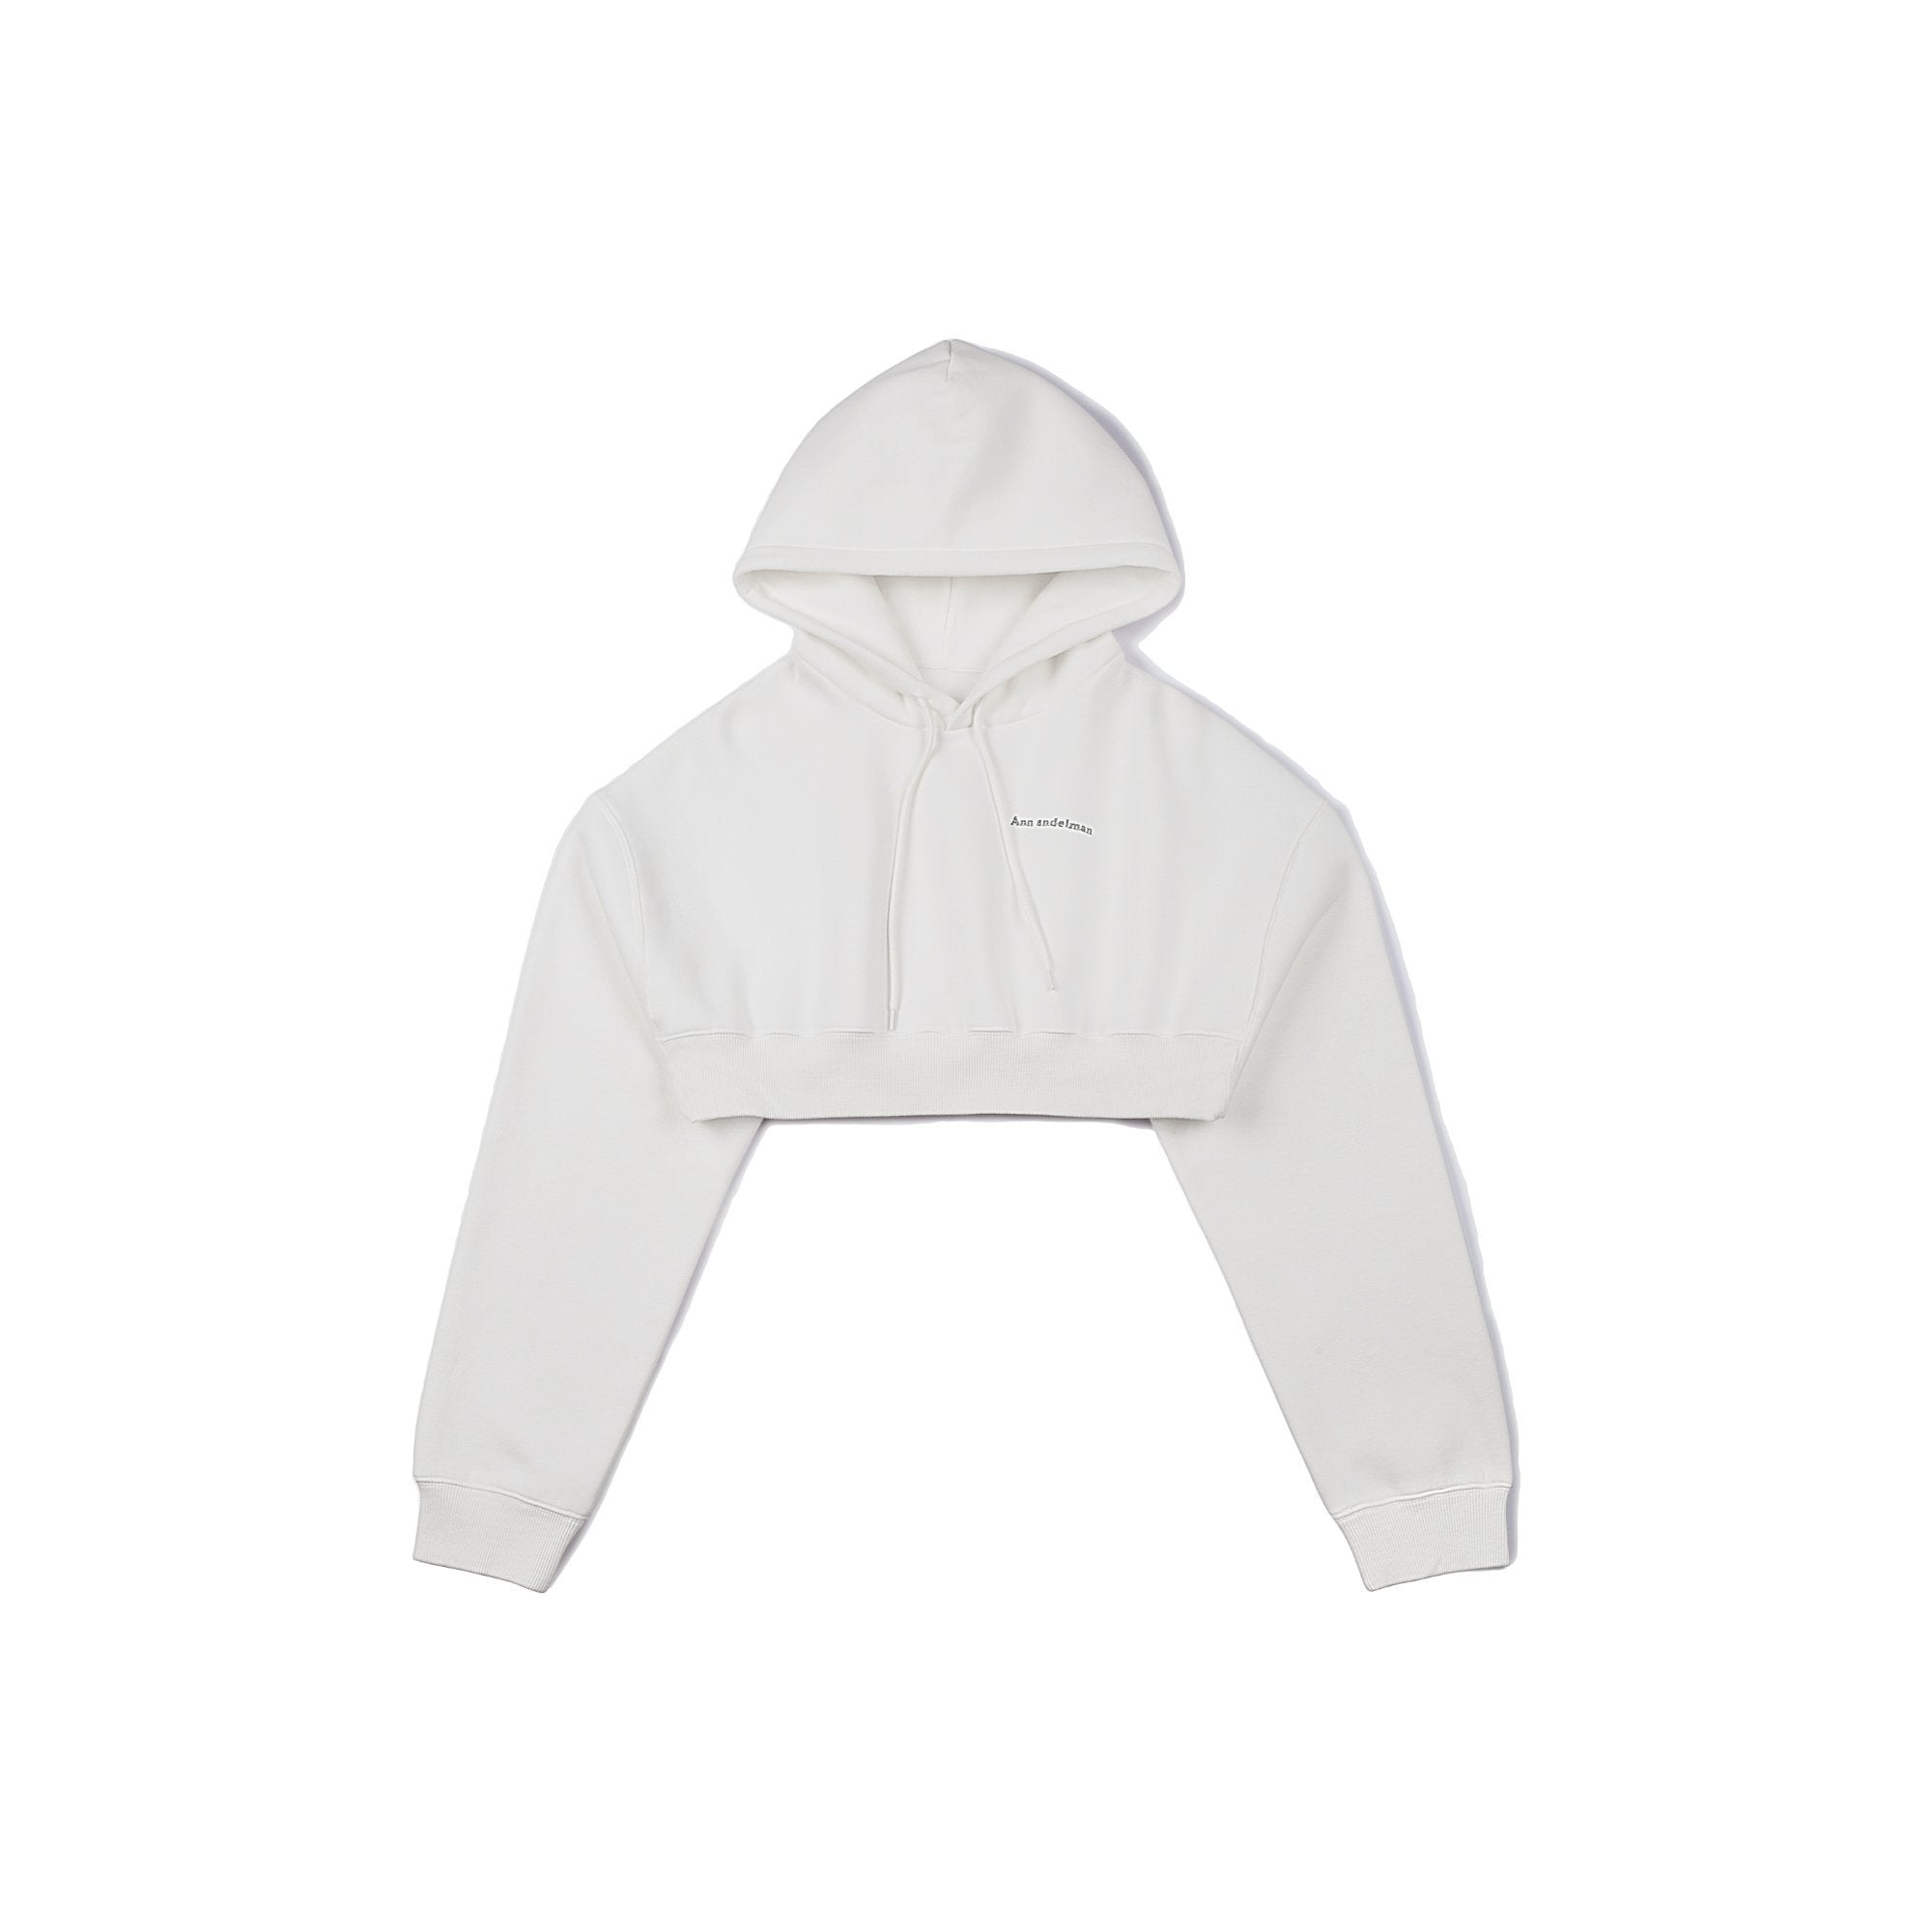 ANN ANDELMAN White Sport Hoodie | MADA IN CHINA